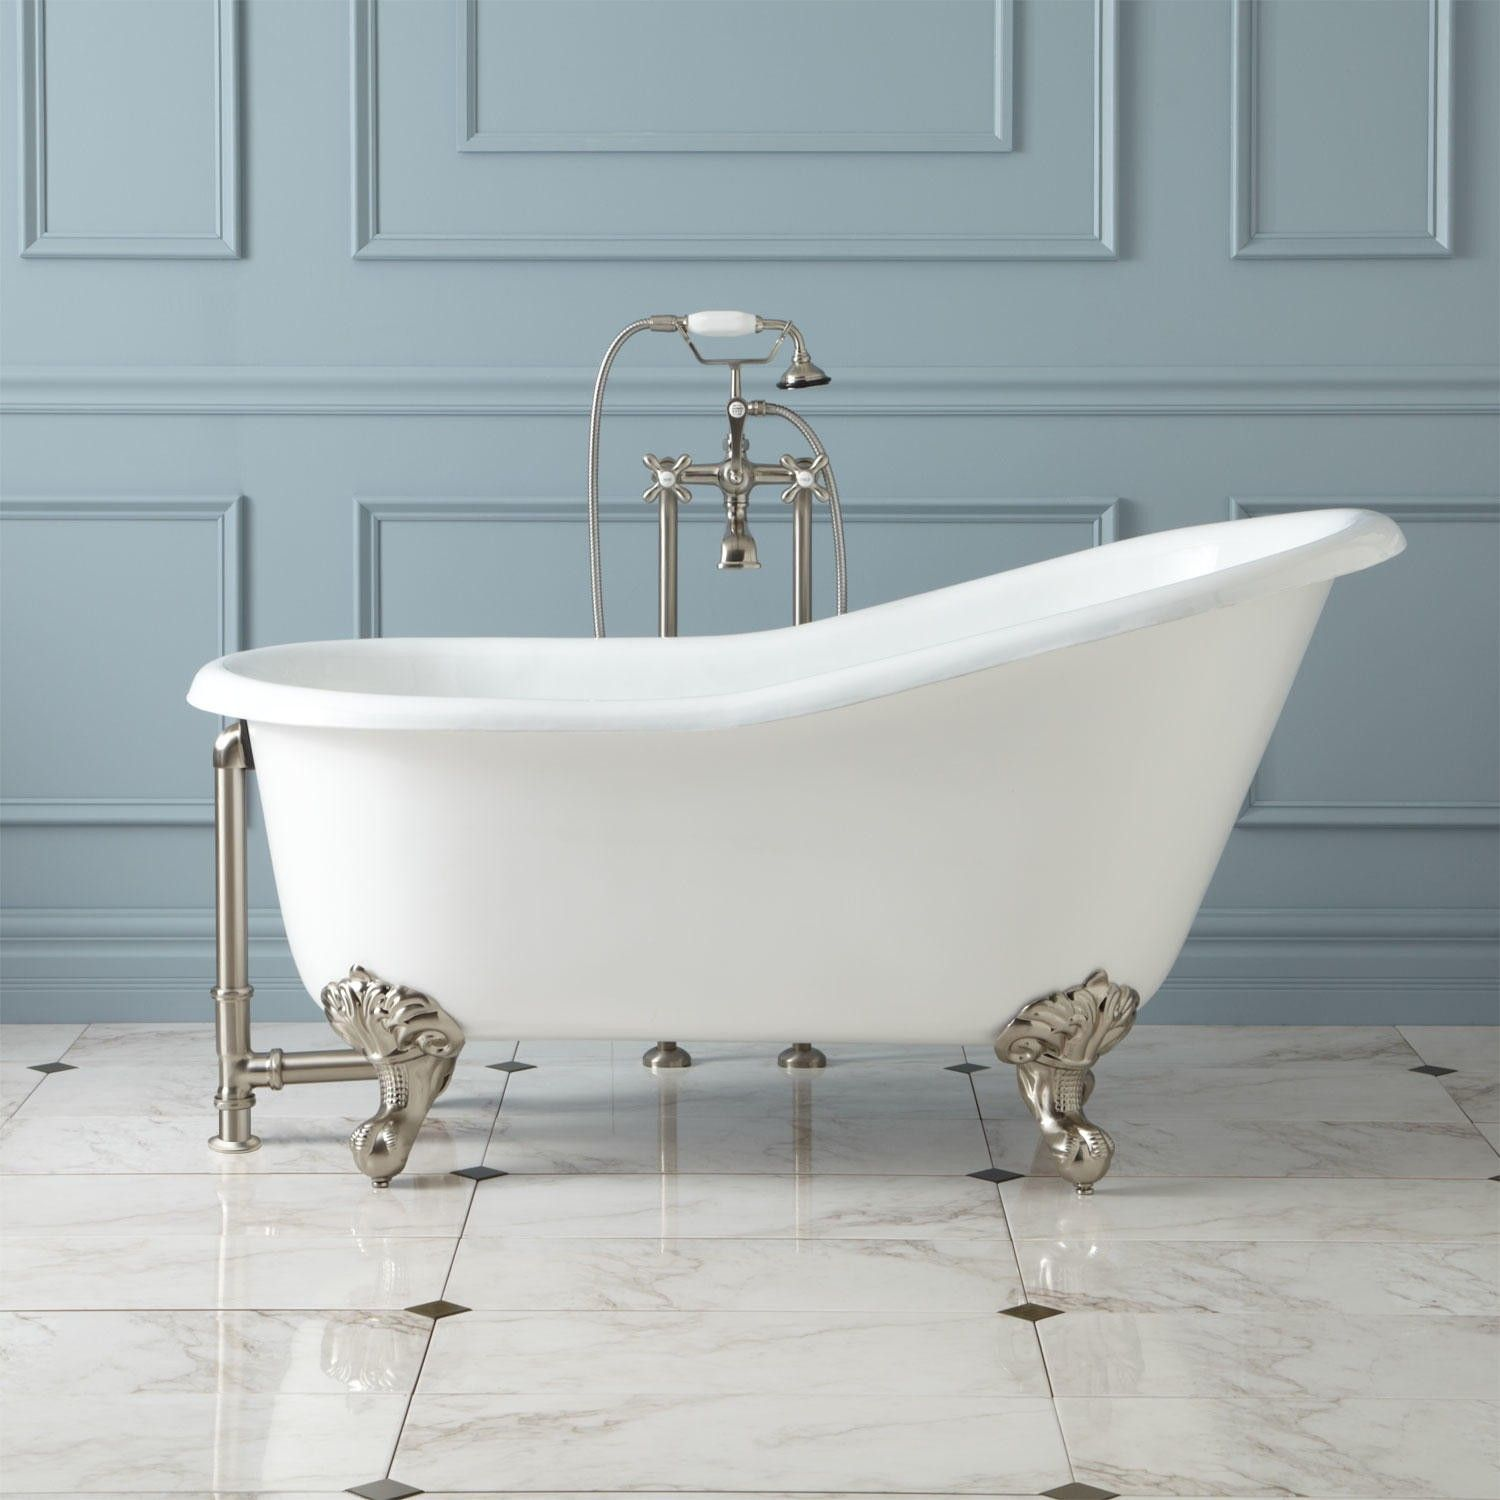 Bathroom paint color idea | Baths | Pinterest | Bath, Walls and House